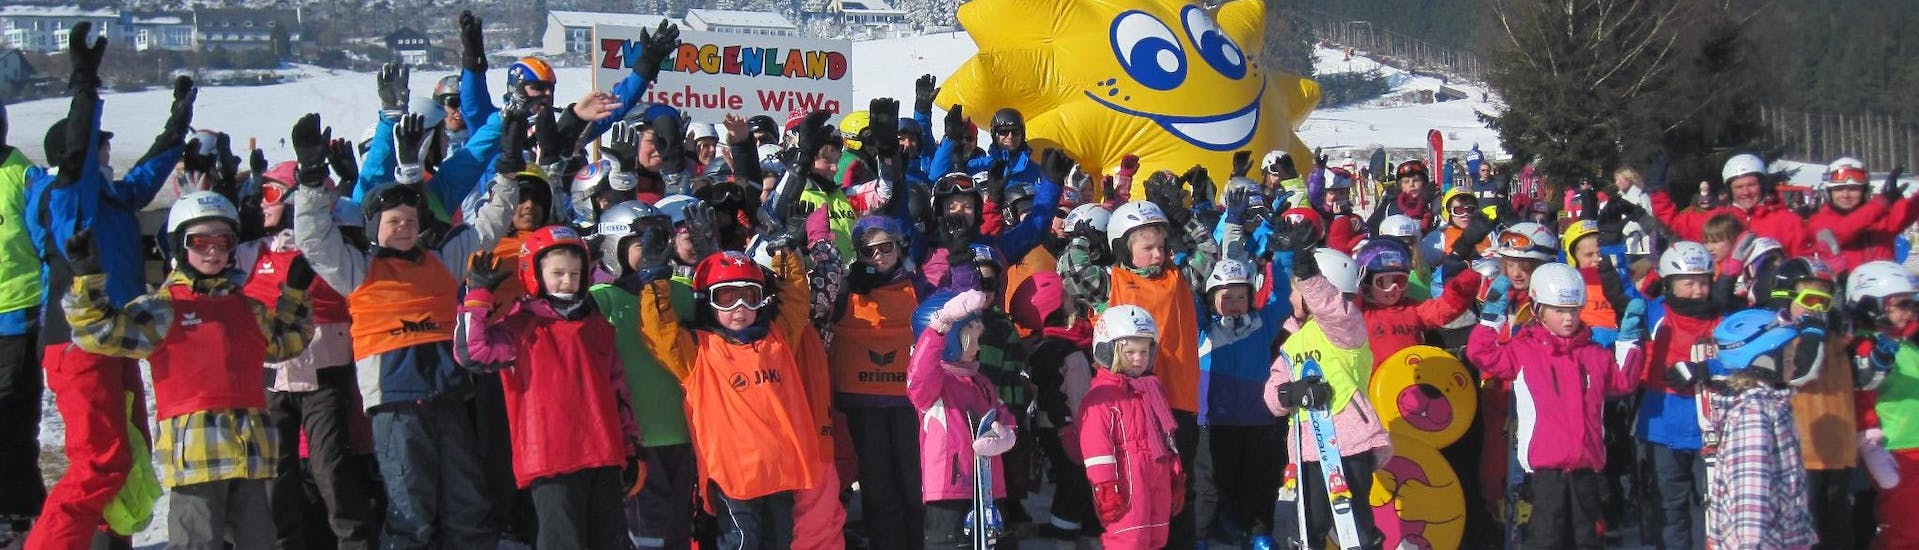 A group photo of happy children is being taken at the end of the day of the lessons in Willingen by a ski instructor from the WIWA   DSV Skischule & Skiverleih in Willingen.